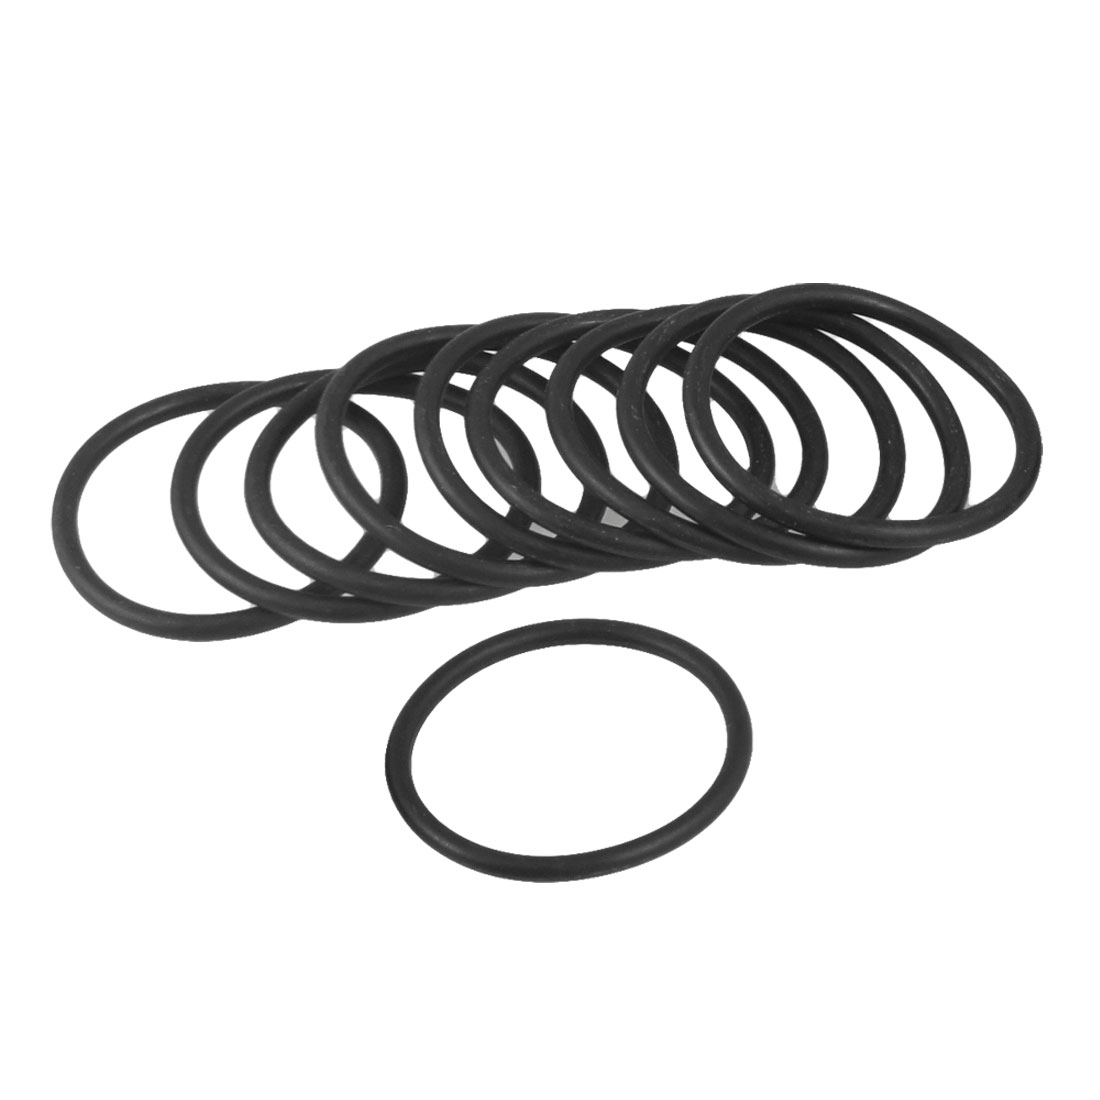 10 Pcs 42mm x 3.1mm x 35.8mm Industrial Rubber O Ring Oil Seal Gaskets